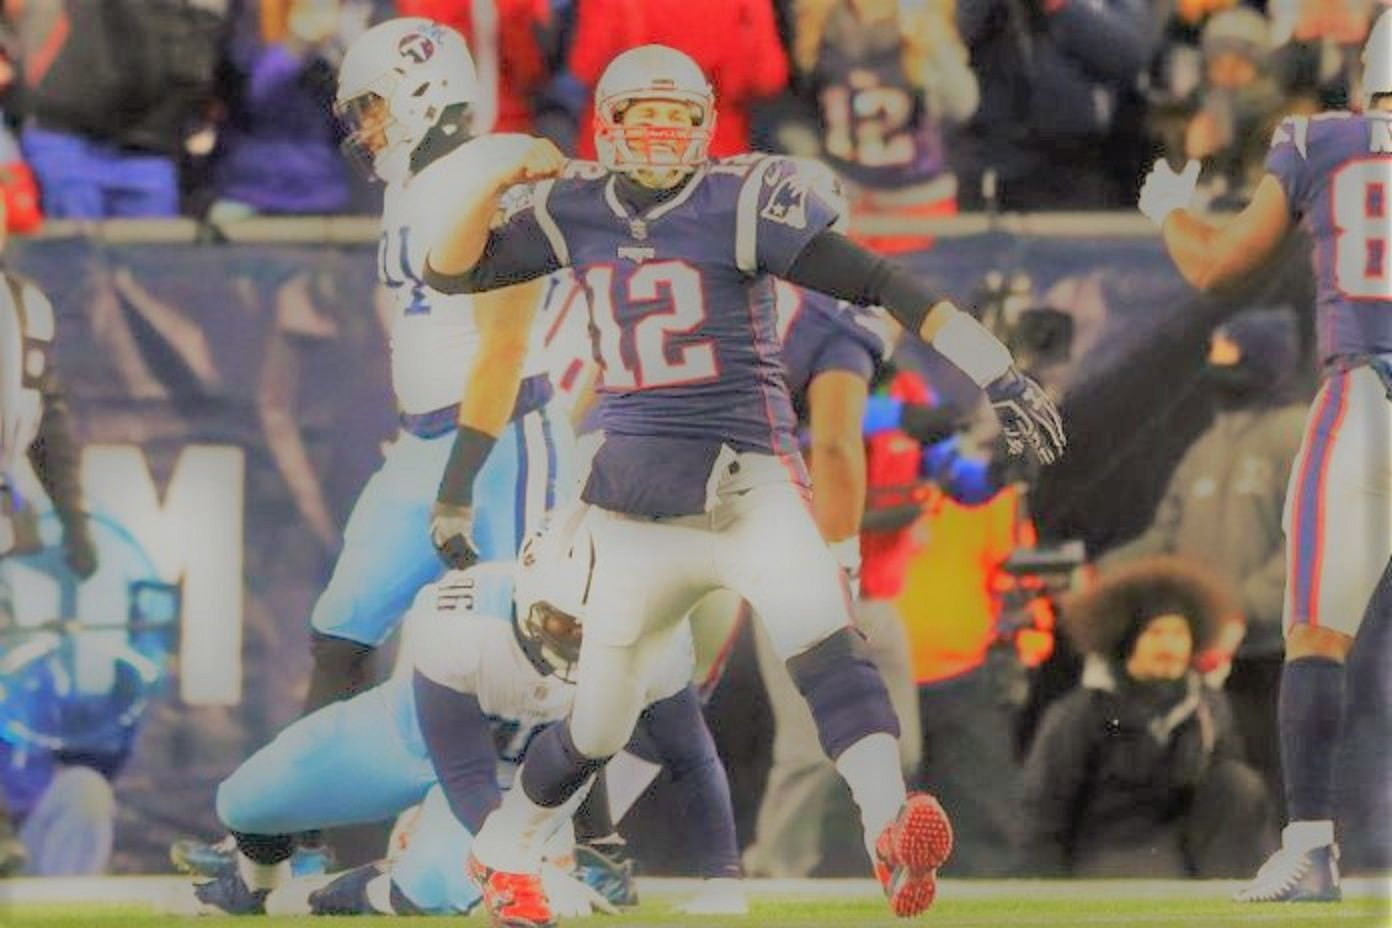 New England Patriots Vs Tennessee Titans Live Streaming Watch Sunday Night Football Online Game Week 10 Updates